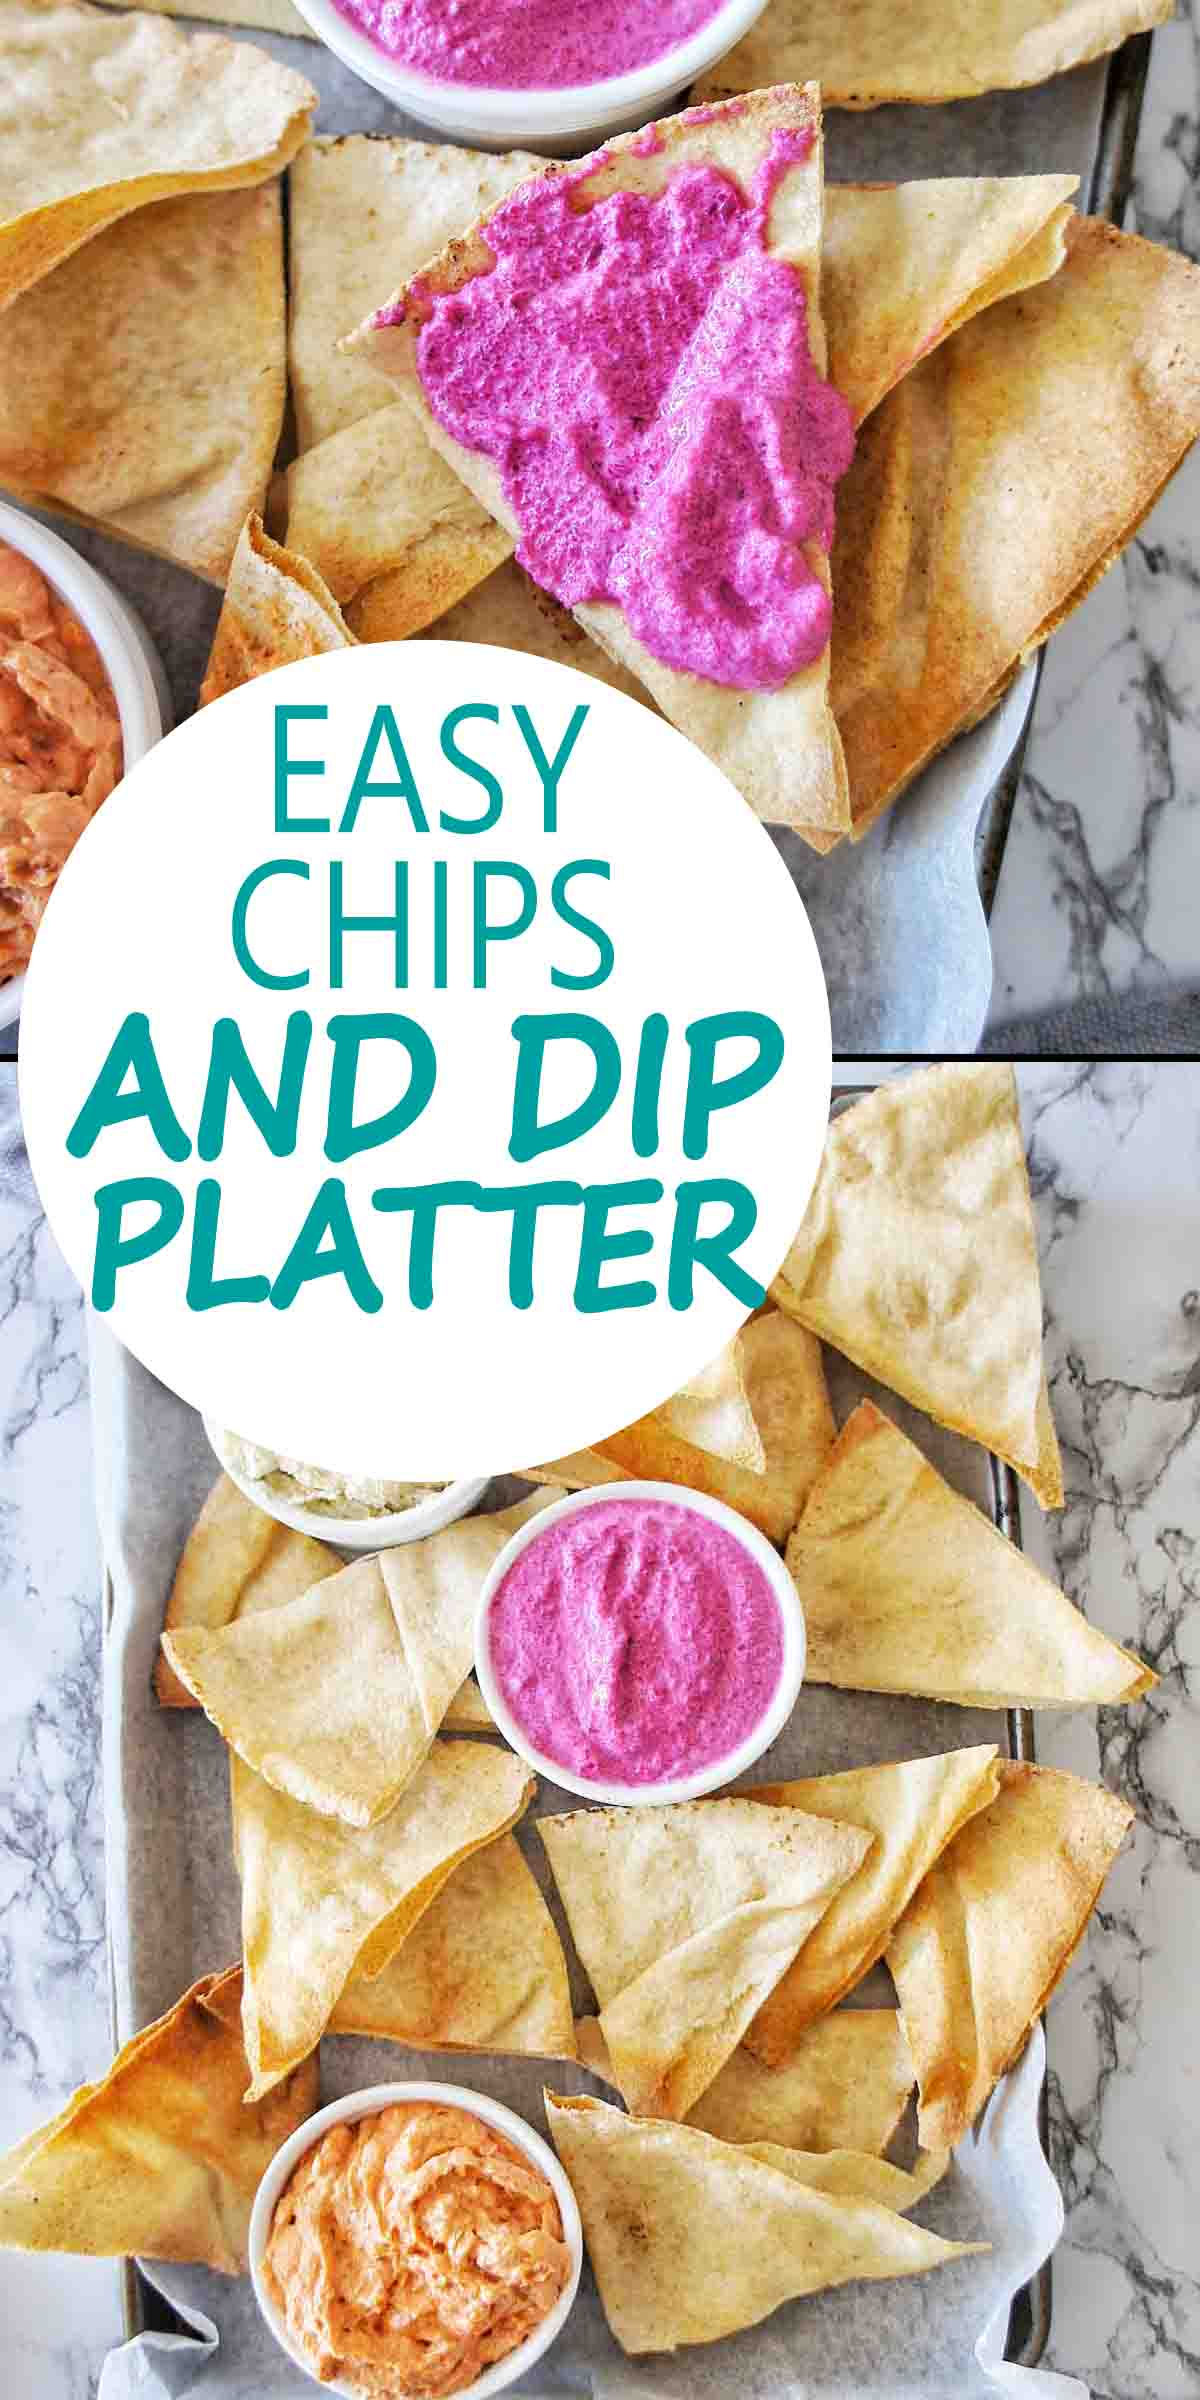 Easy Chips and Dip Platter